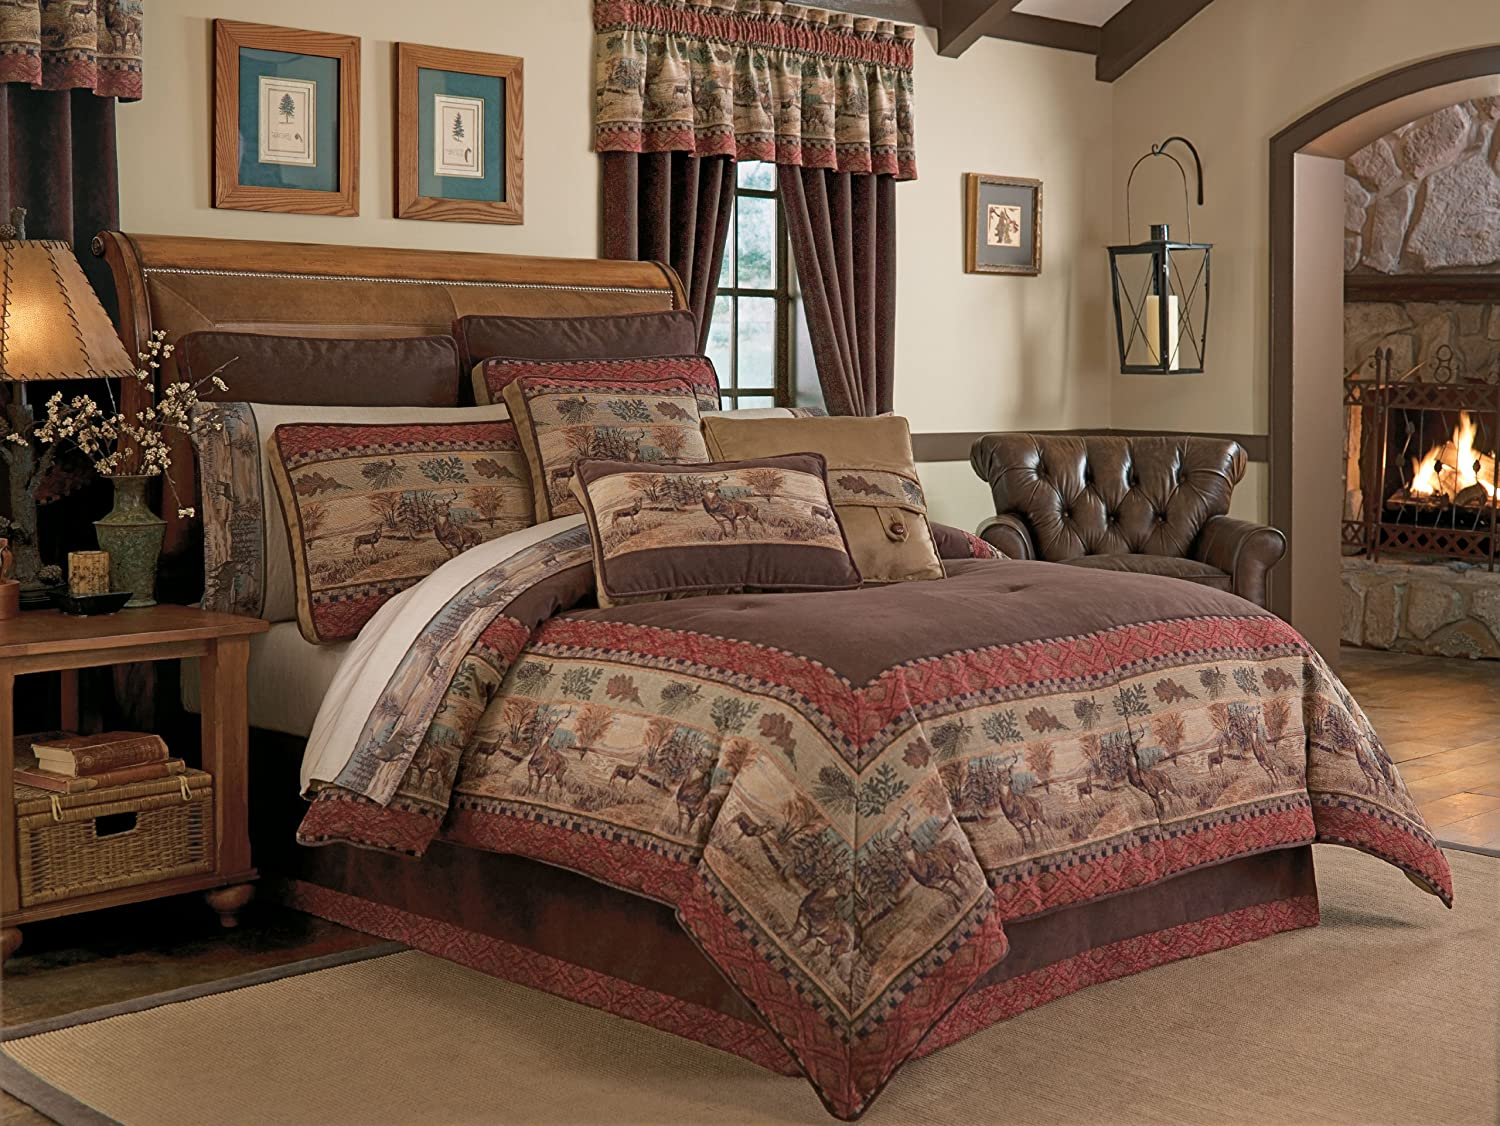 Rustic bedding cabin bedding lodge bedding cabin decor for Decorative bed quilts